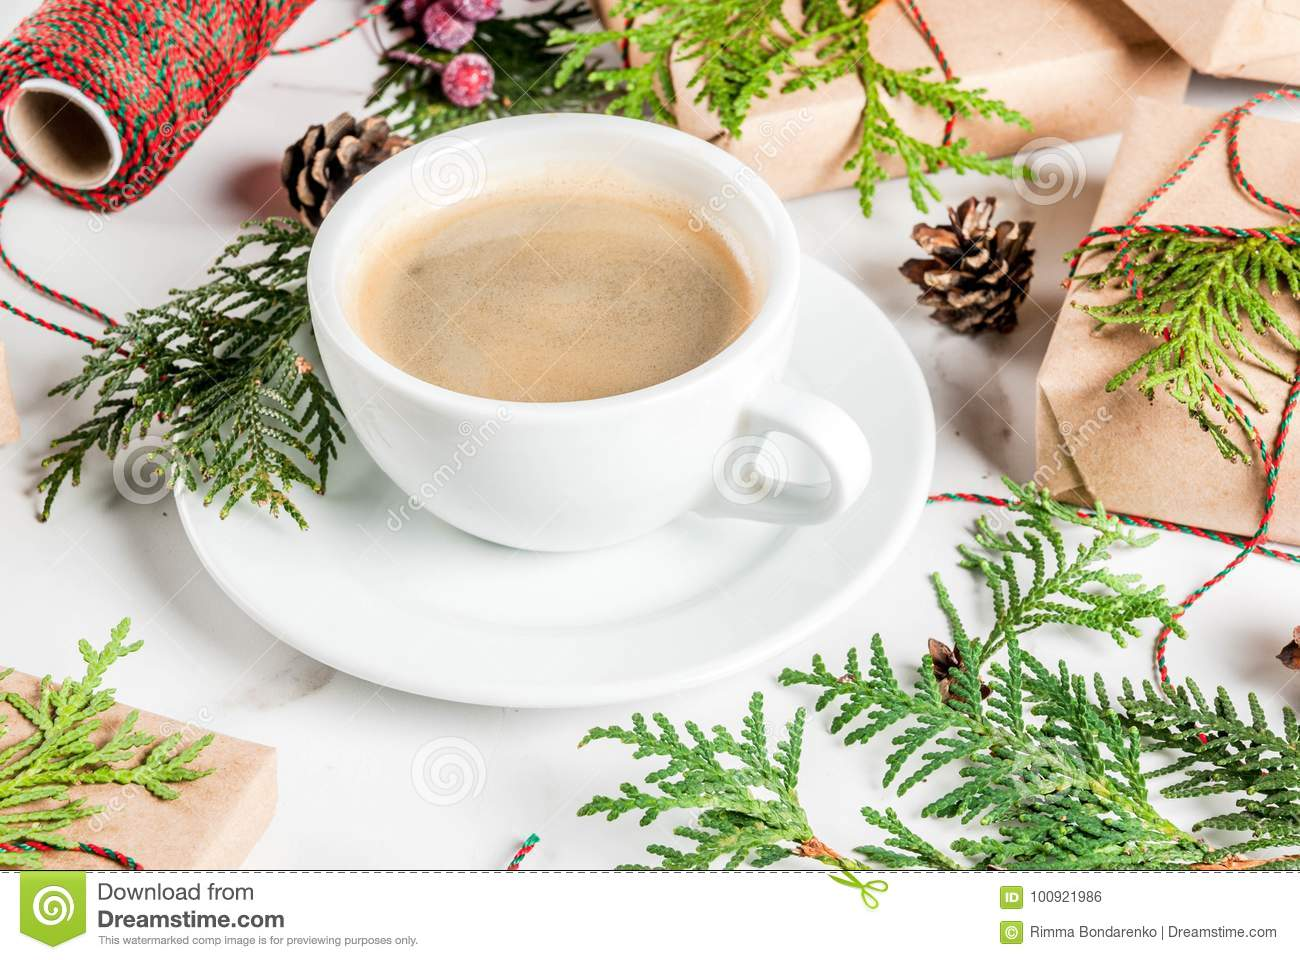 Preparation For Christmas With Coffee And Gifts Stock Photo - Image ...